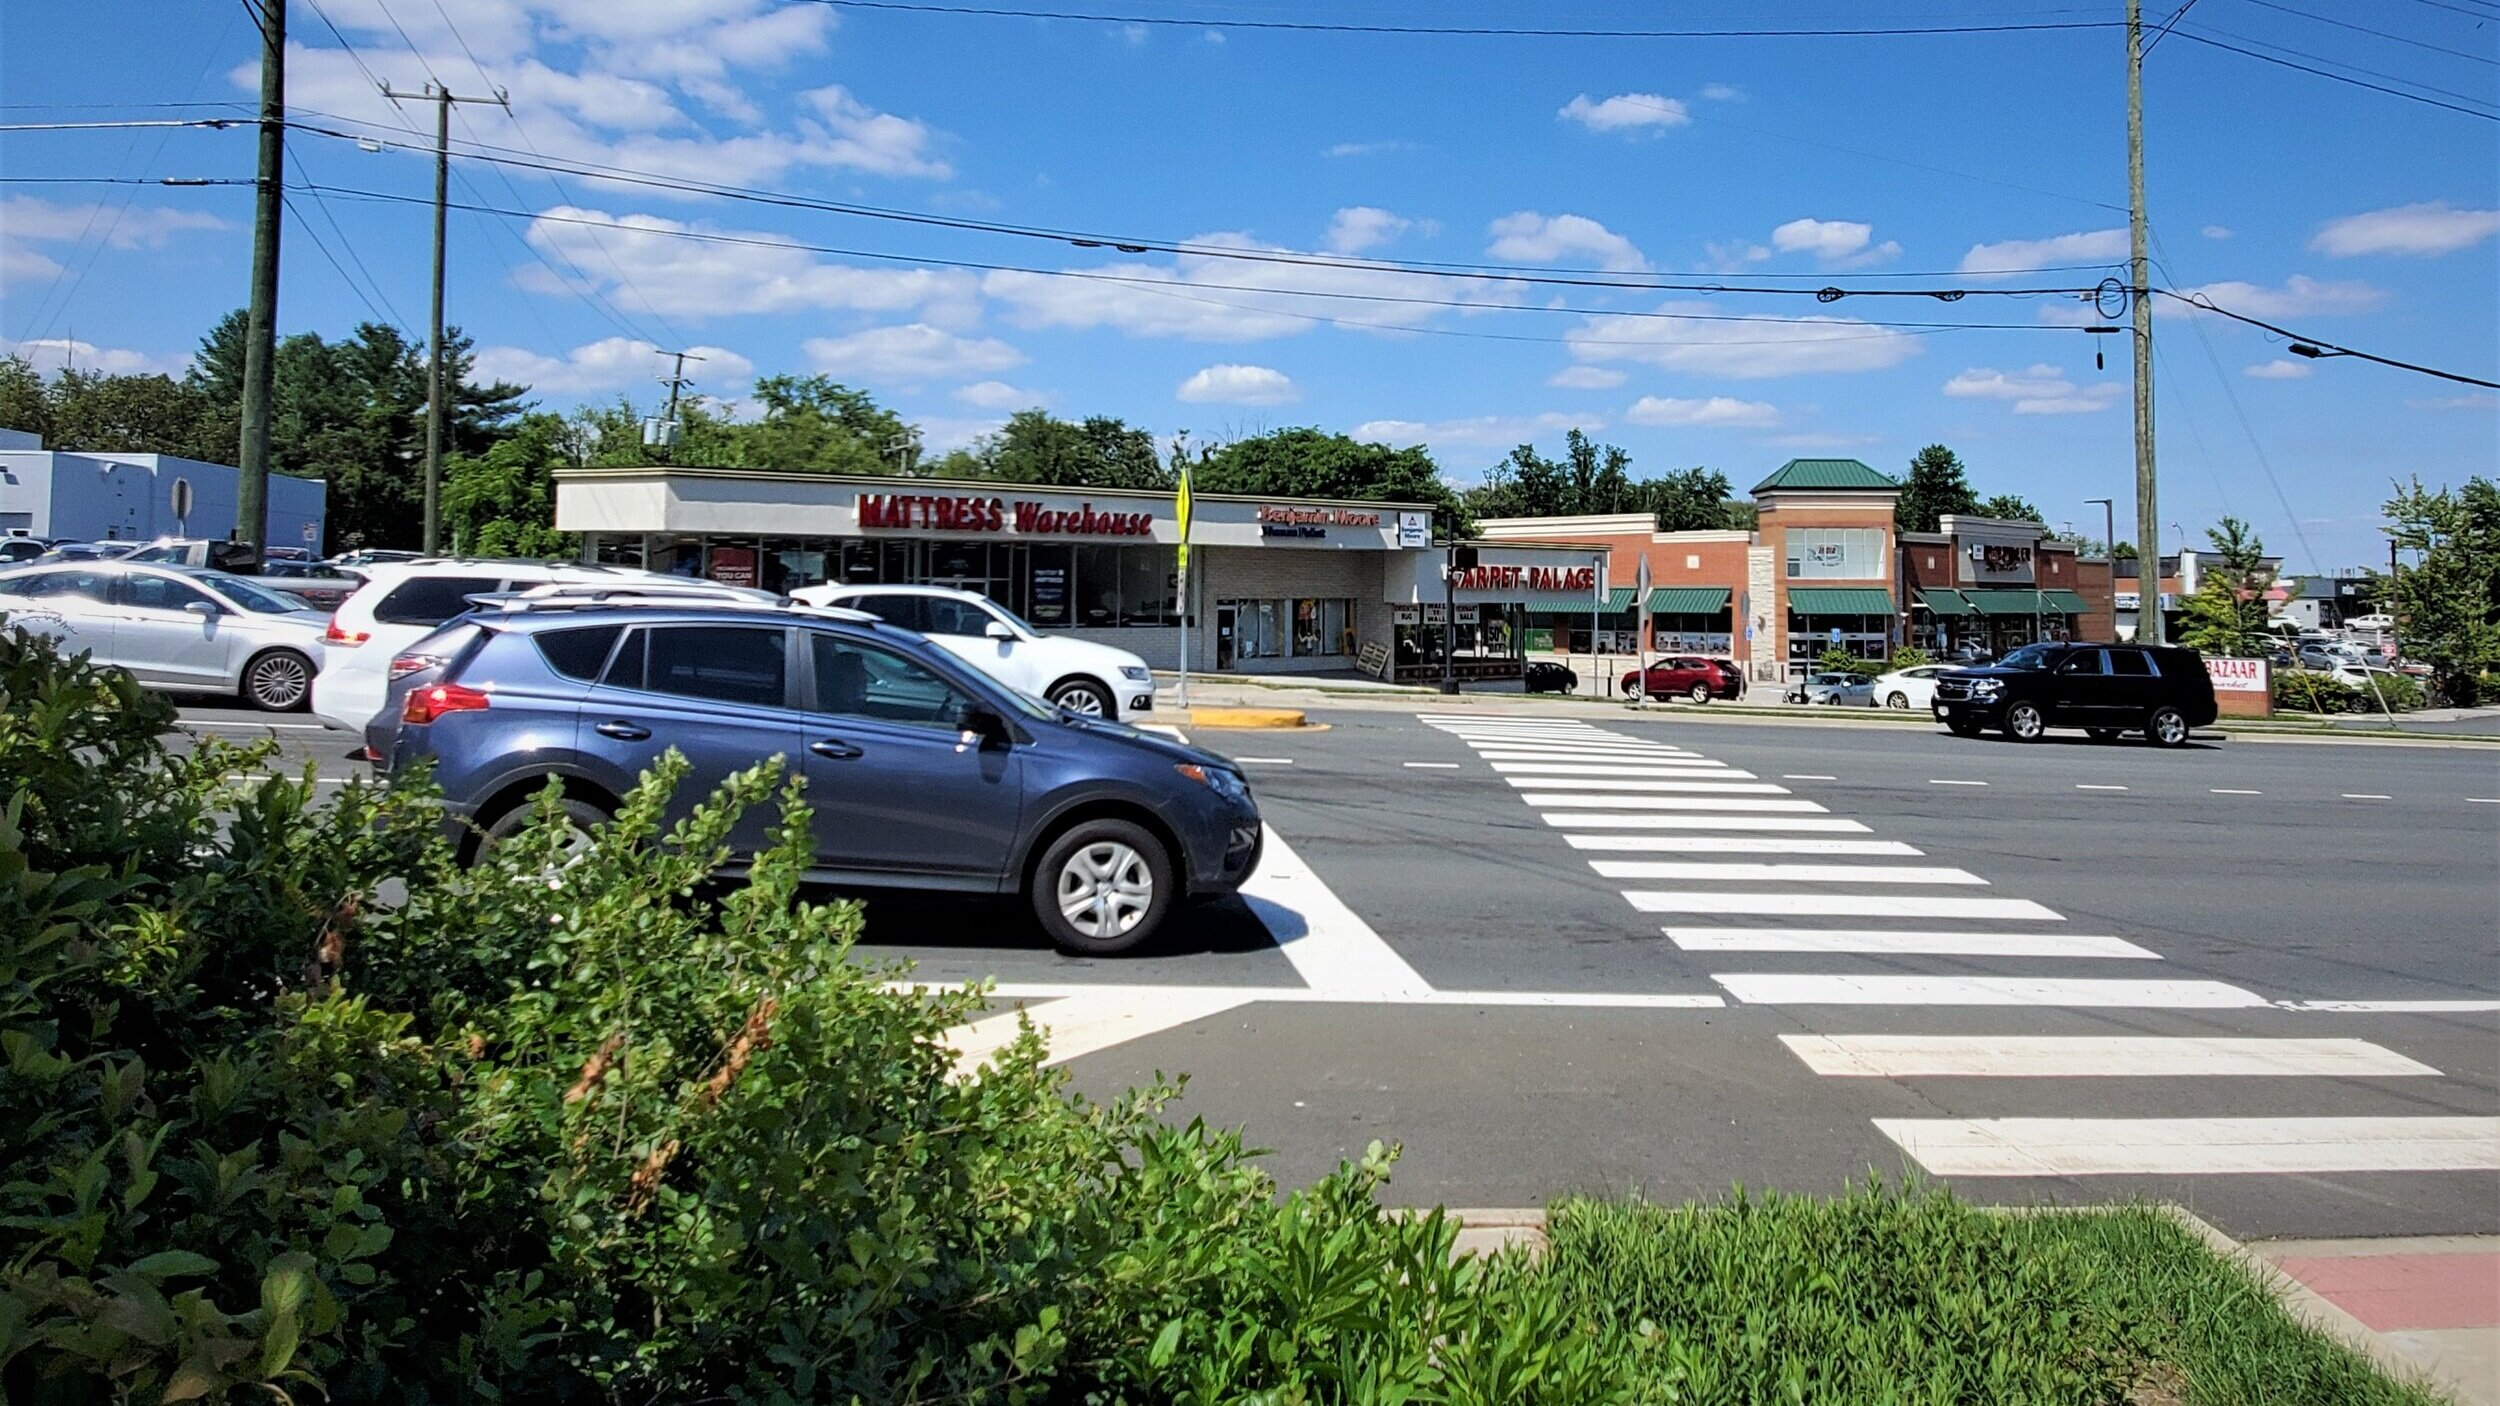 The timer for this very long crosswalk barely lasts long enough to cross, even at a brisk pace.